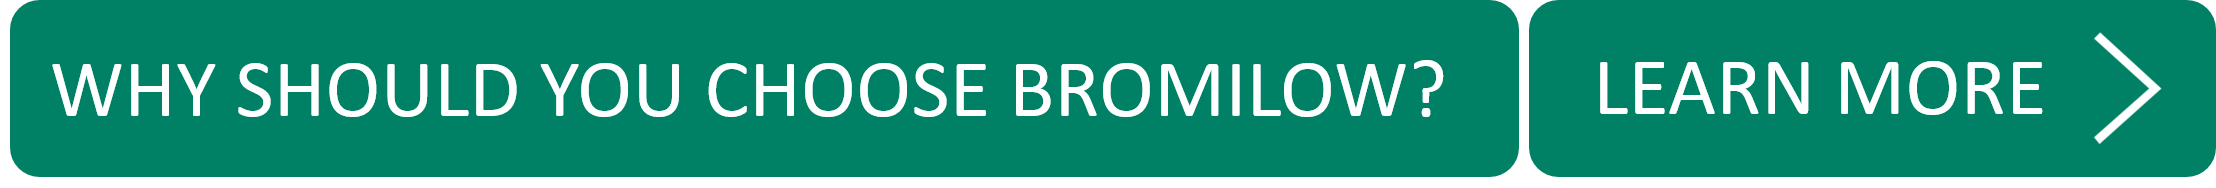 Bromilow Home Care Services